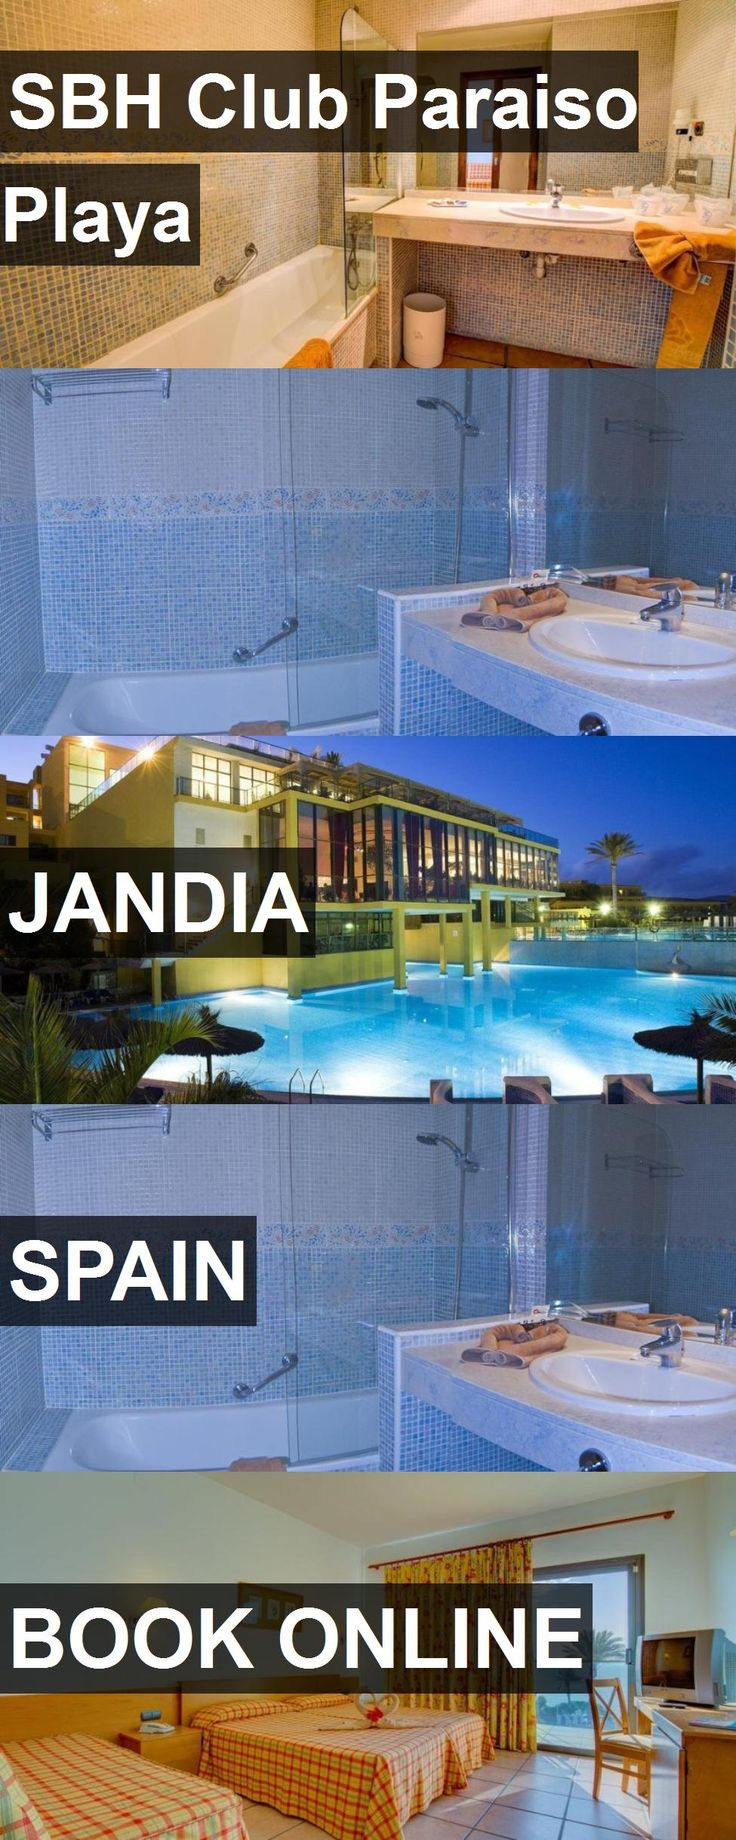 Hotel SBH Club Paraiso Playa in Jandia, Spain. For more information, photos, reviews and best prices please follow the link. #Spain #Jandia #SBHClubParaisoPlaya #hotel #travel #vacation